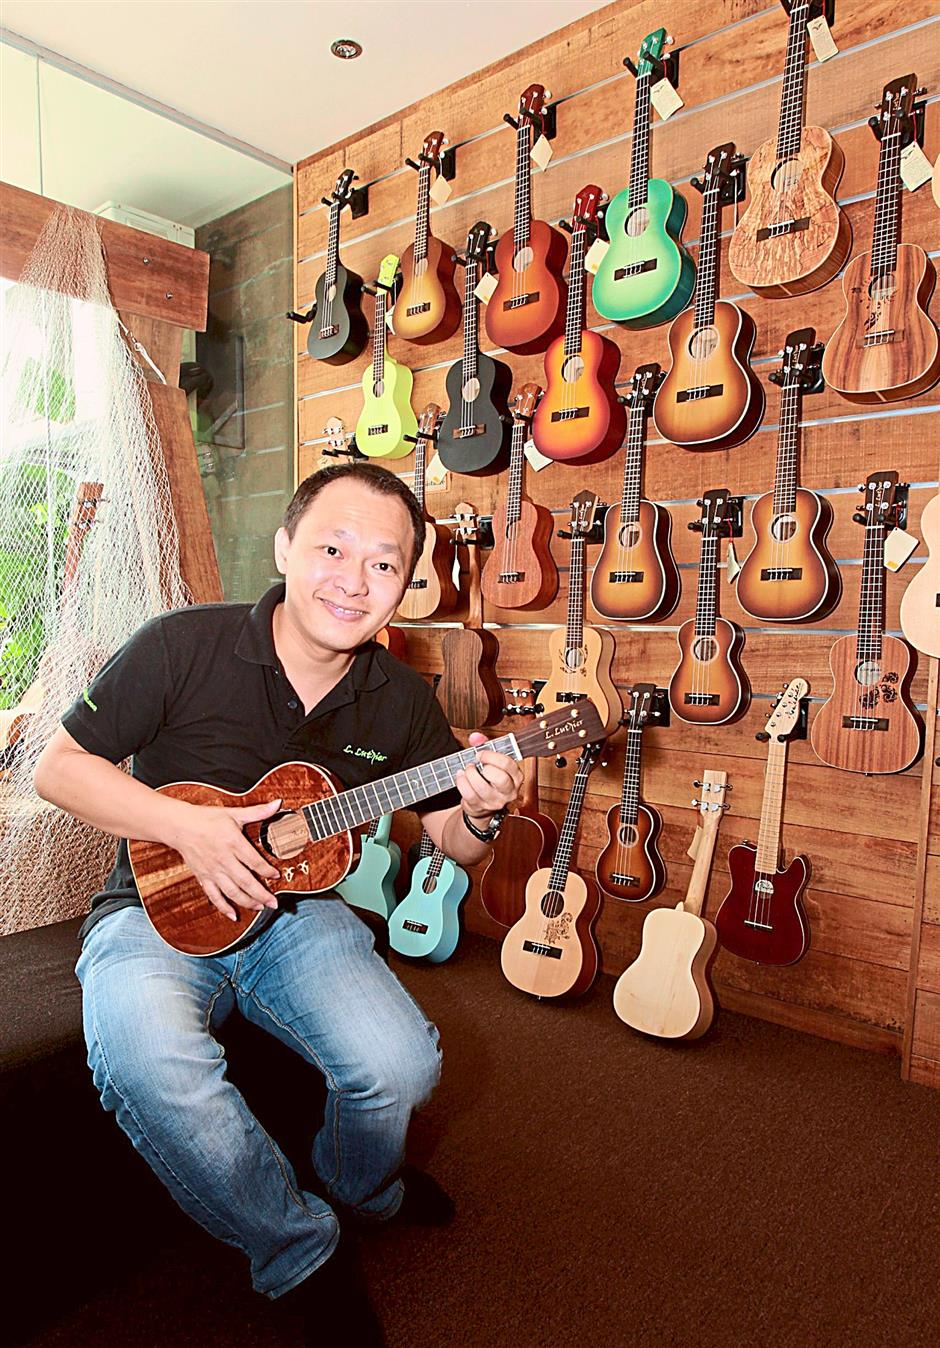 Lai brings in 2,000 units of L. Luthier ukuleles every two months.